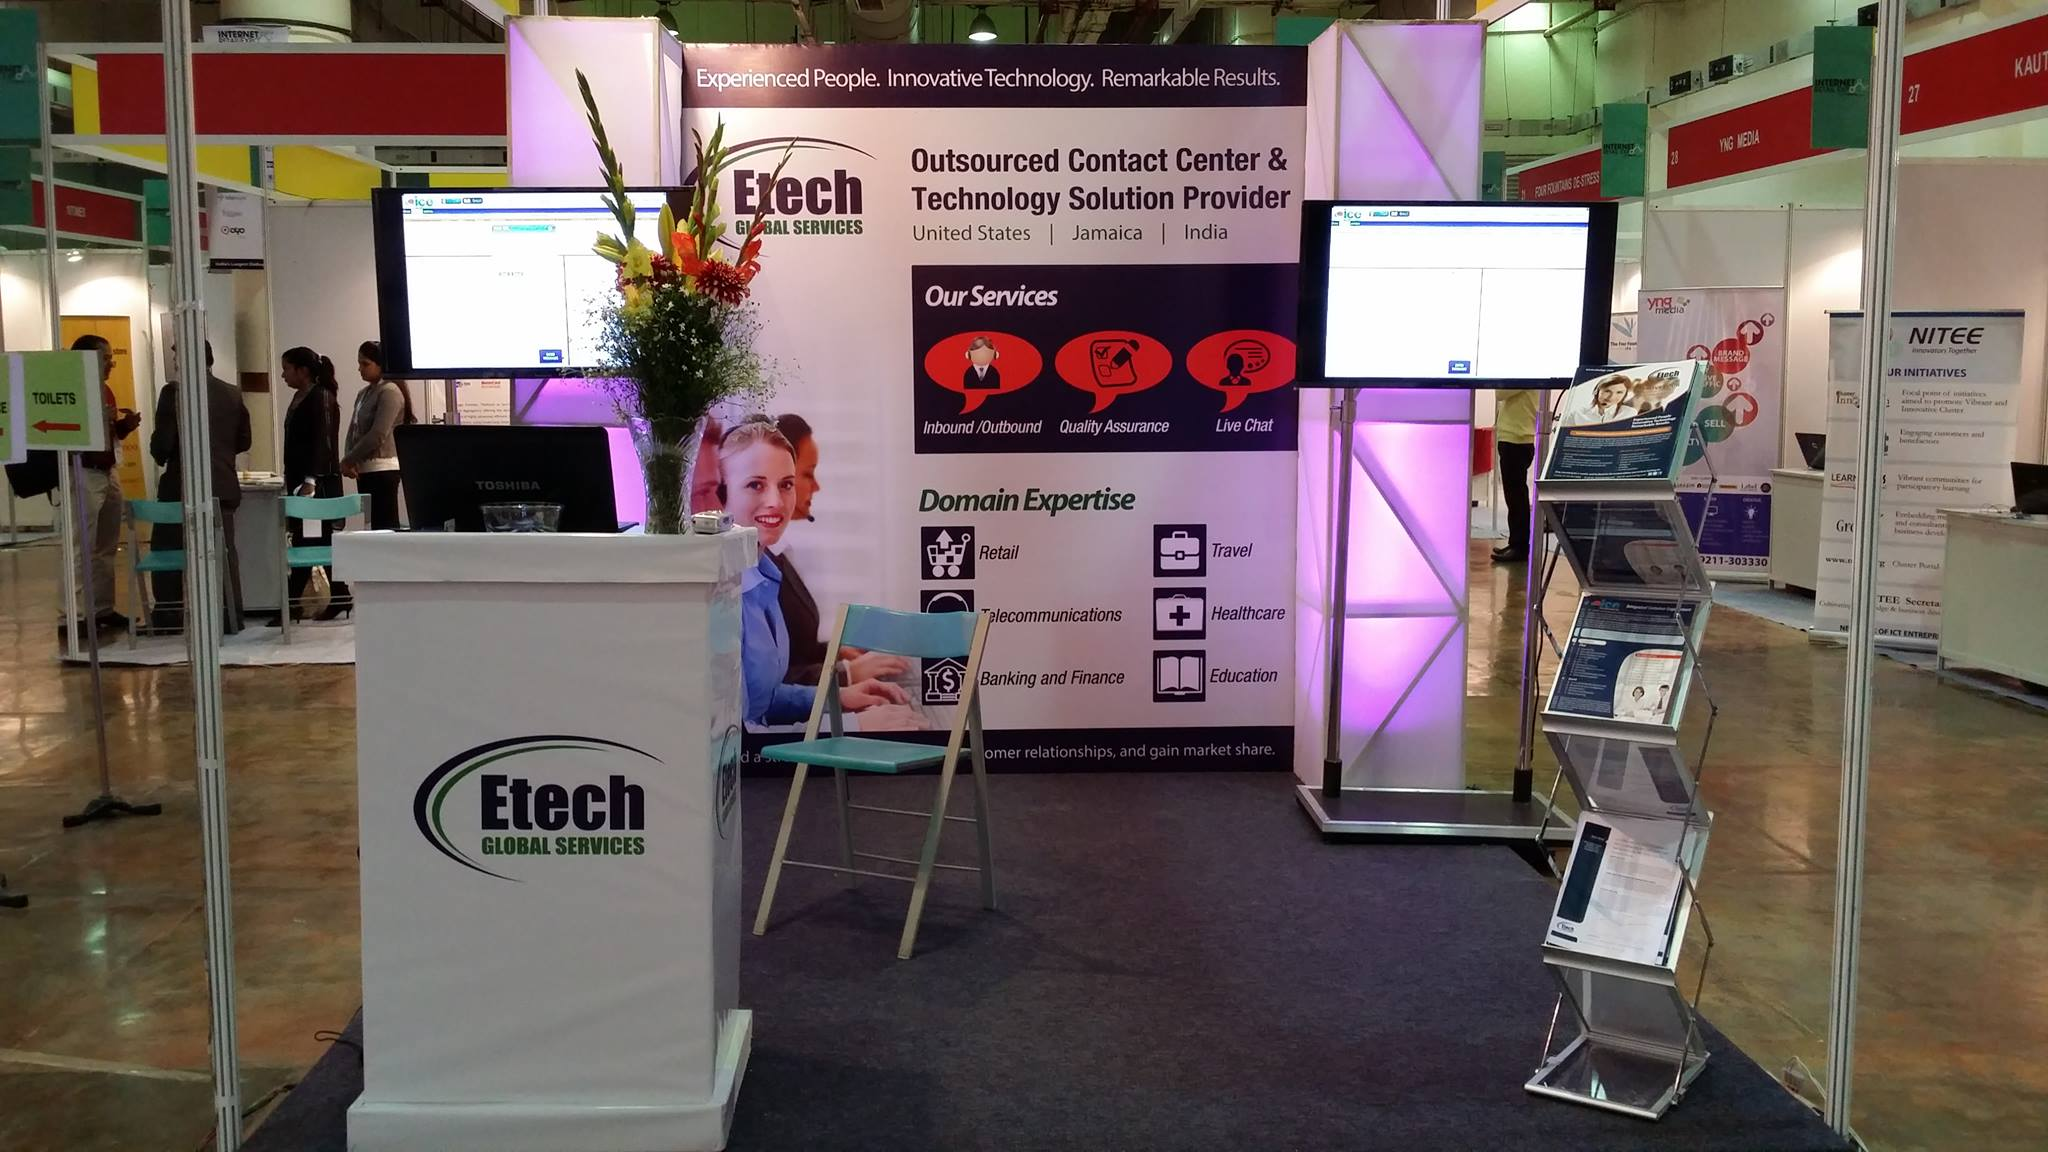 Etech Global Services Makes its Ground in IRE 2014